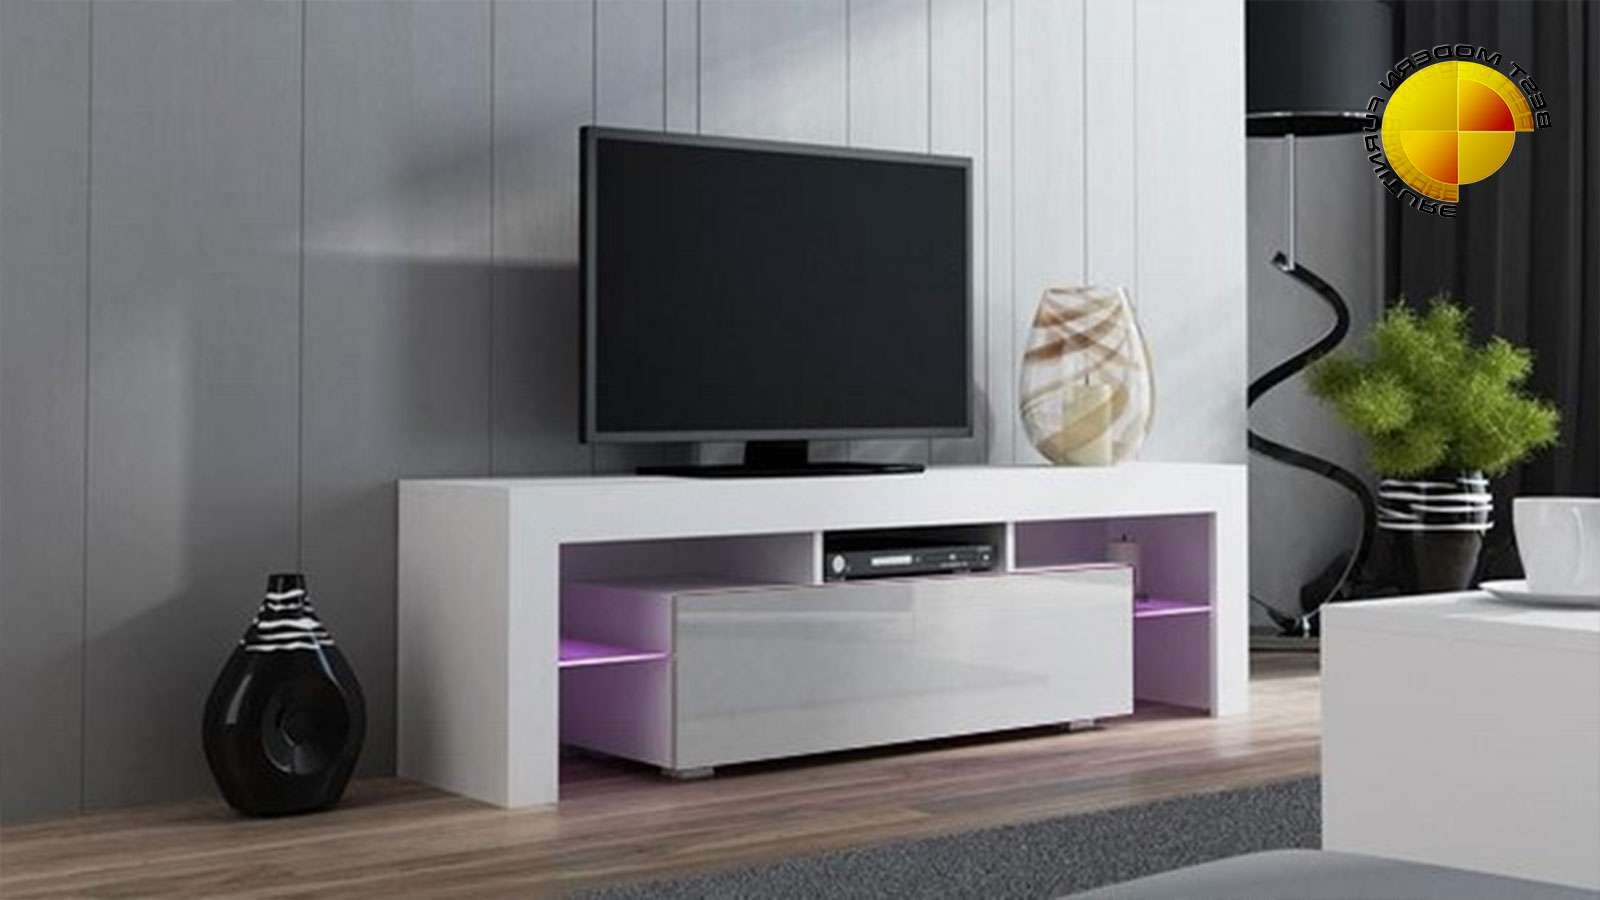 Modern Tv Stand 160cm High Gloss Cabinet Rgb Led Lights White Unit Pertaining To White High Gloss Tv Stands (View 11 of 15)